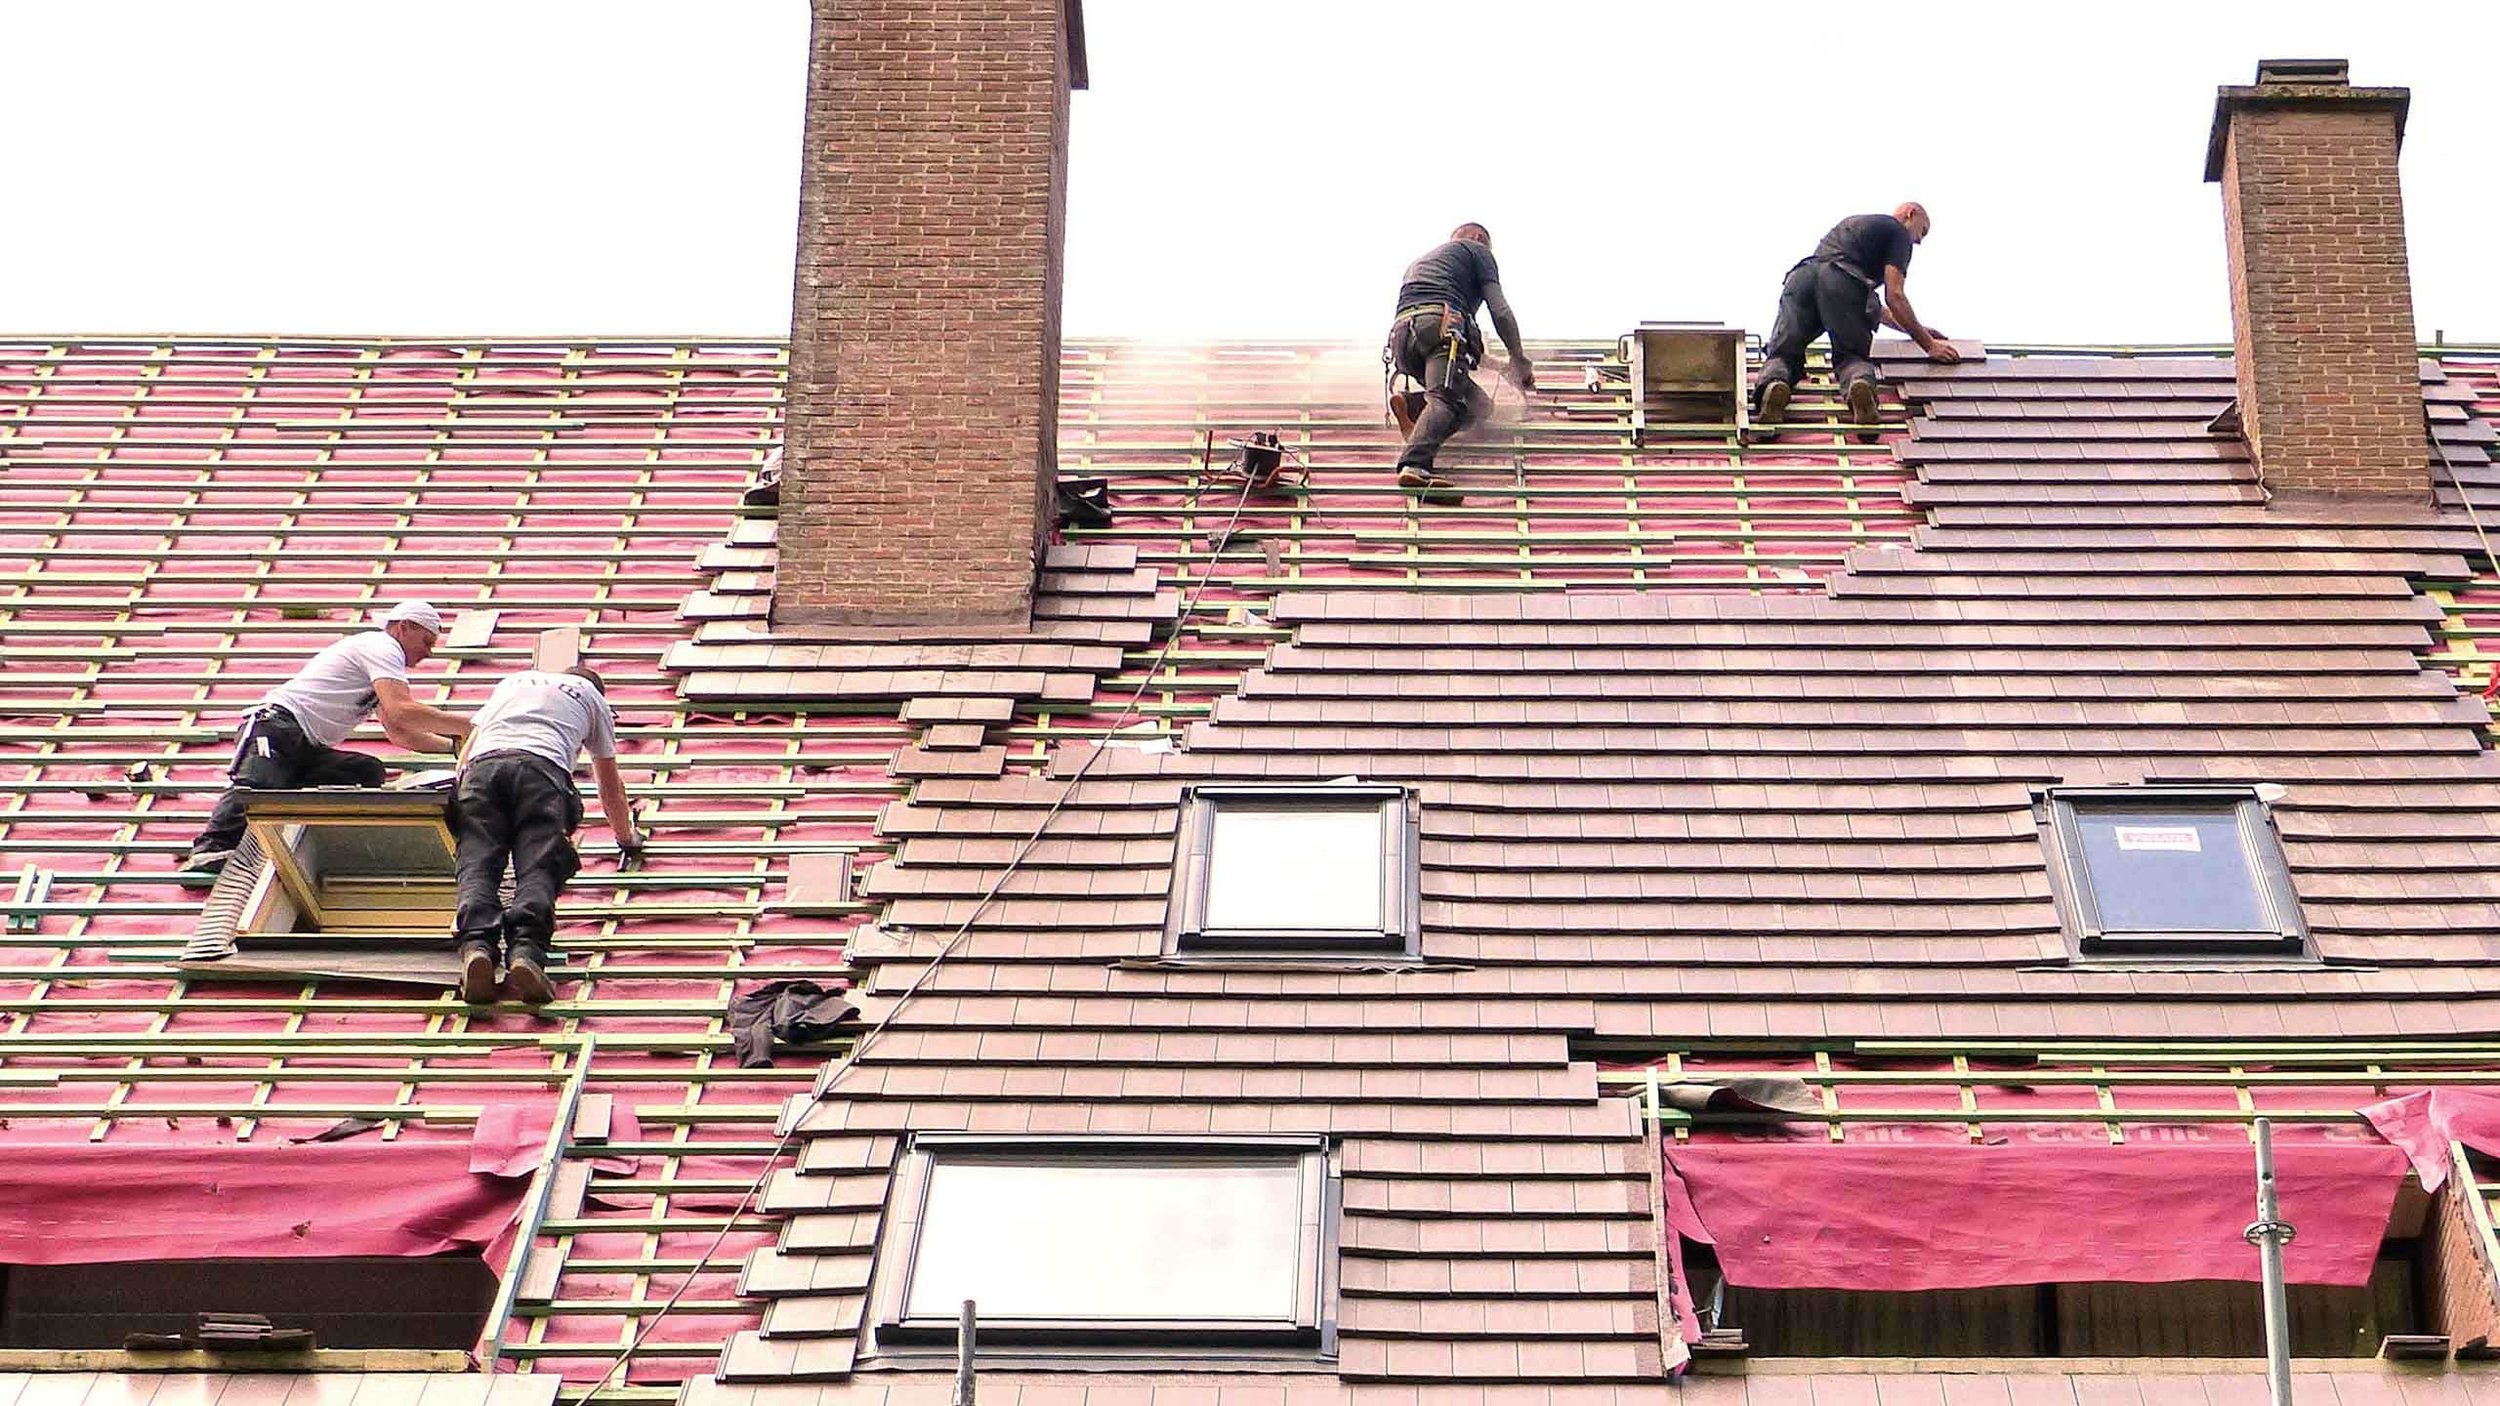 the-roof-company-trc-toiturier-toitures-bardages-bruxelles-brabant-wallon-equipes.jpg